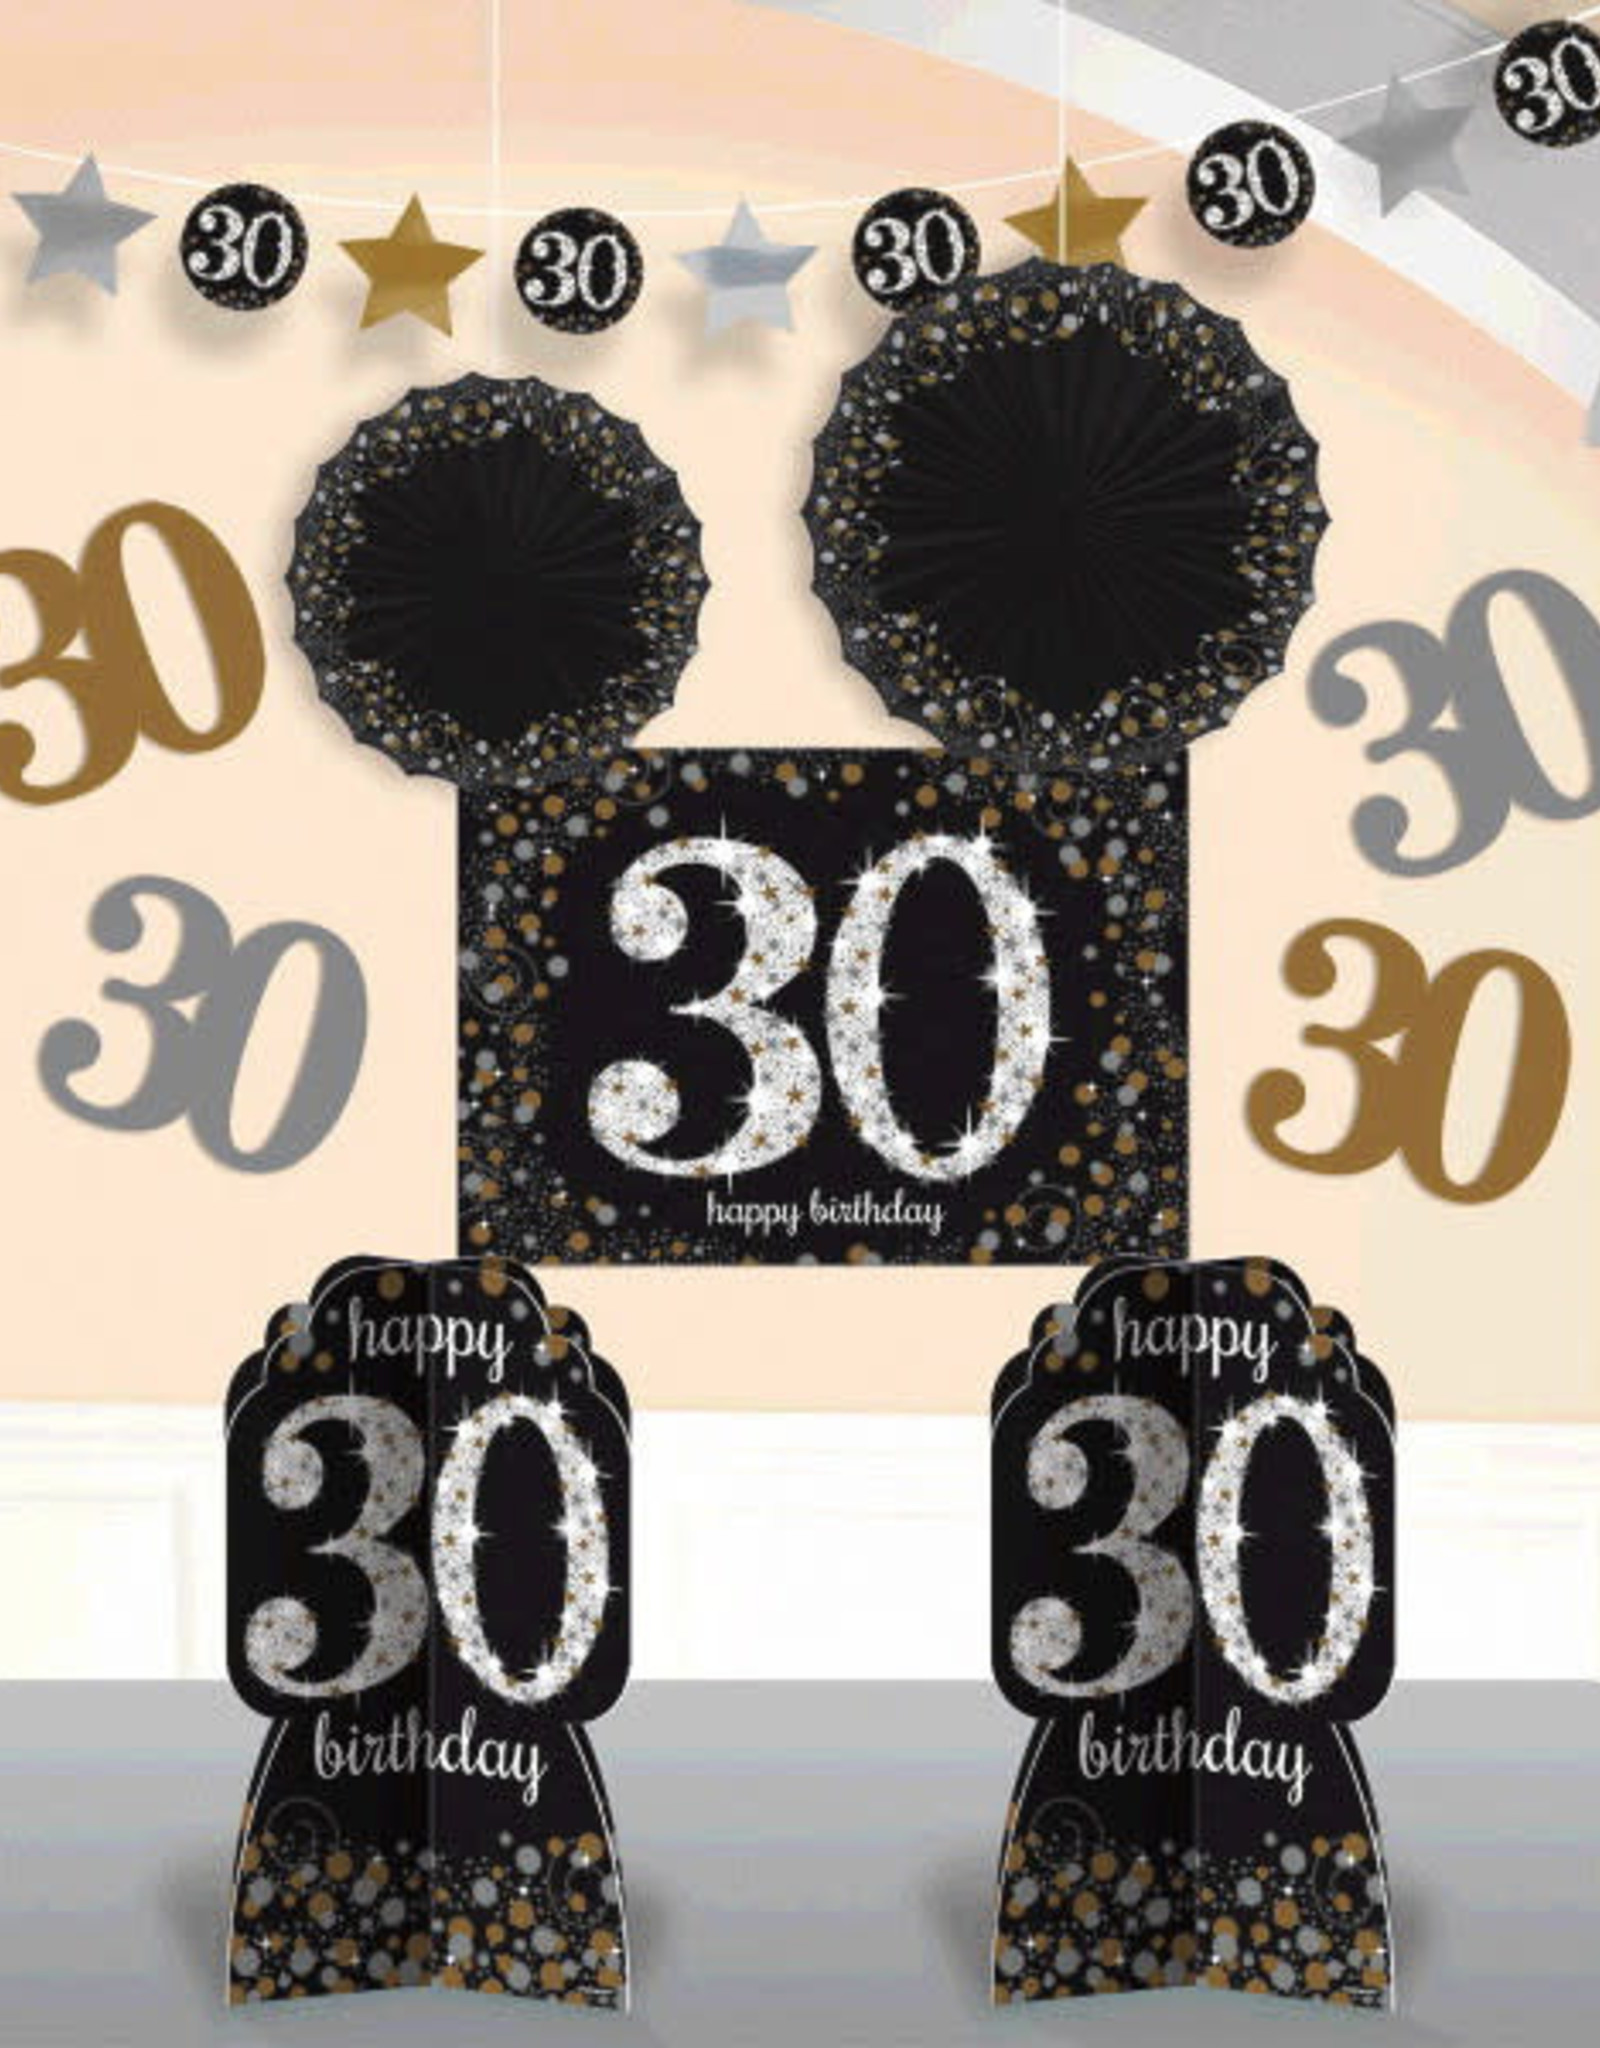 30th Birthday Black & Gold Room Decorating Kit